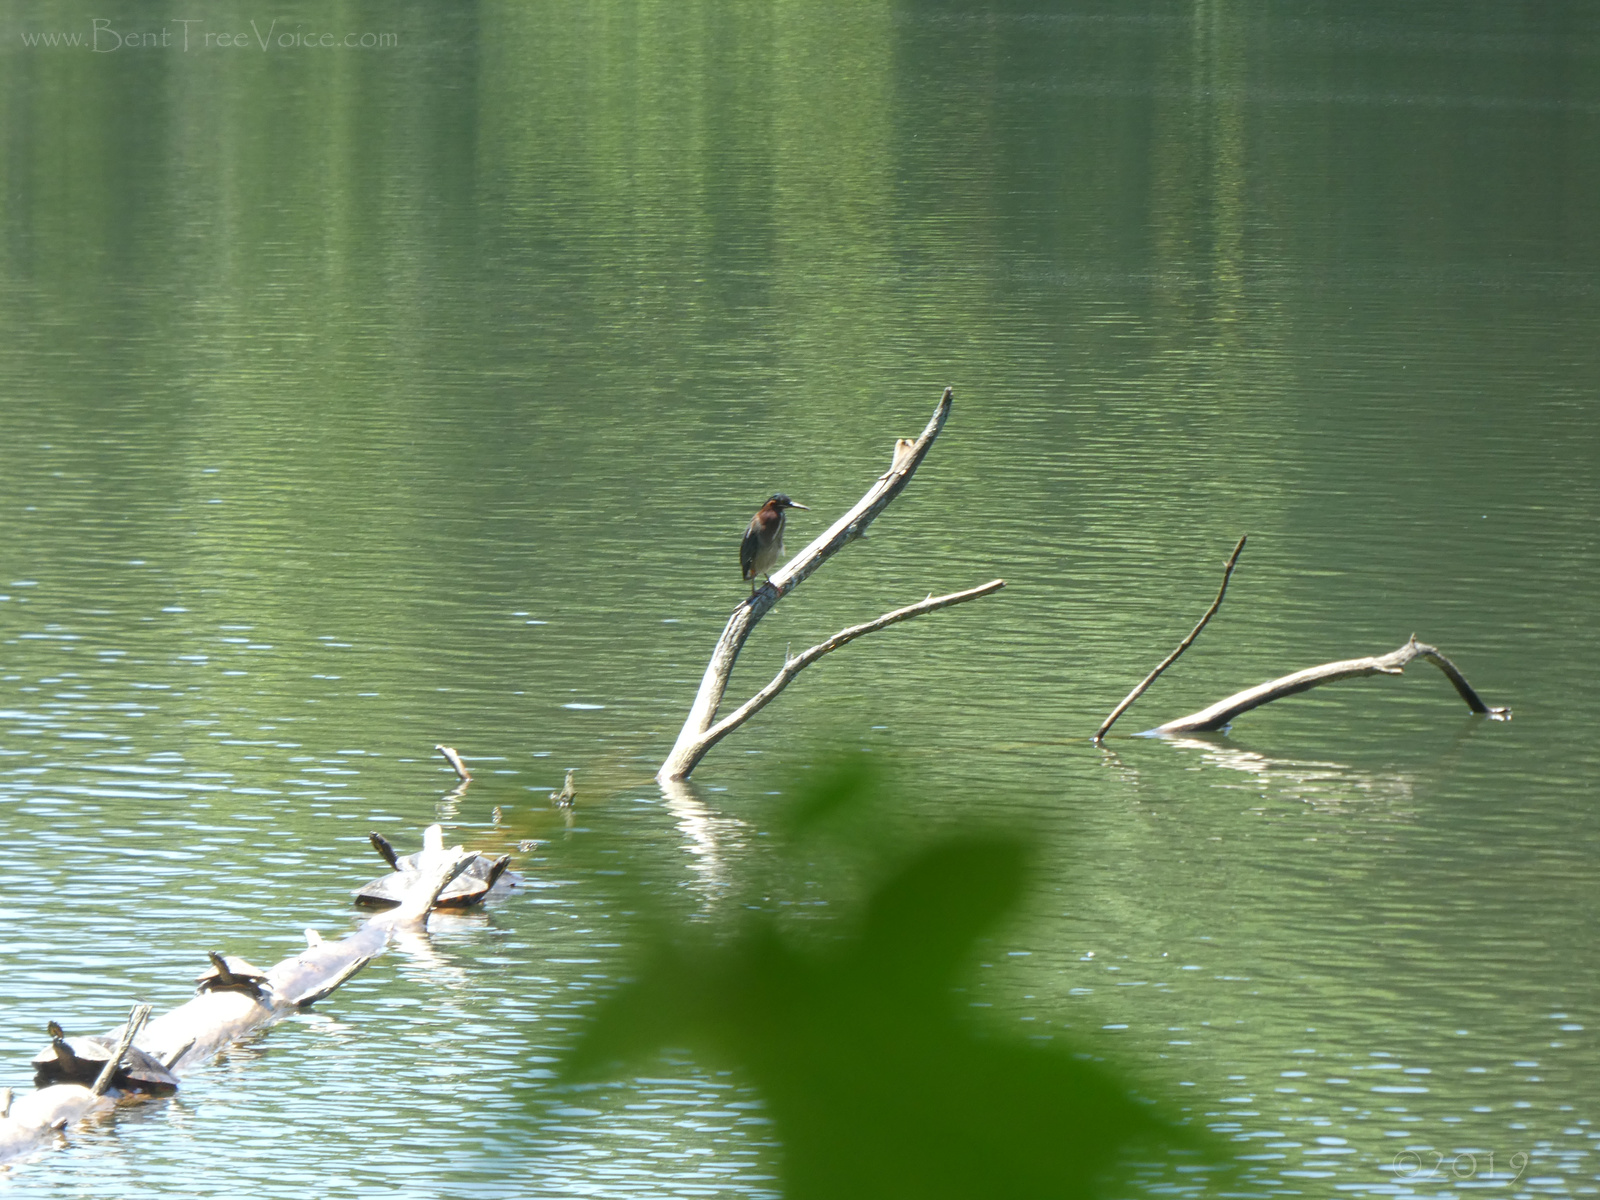 May 14, 2019 - Green Heron and Turtles in Bent Tree